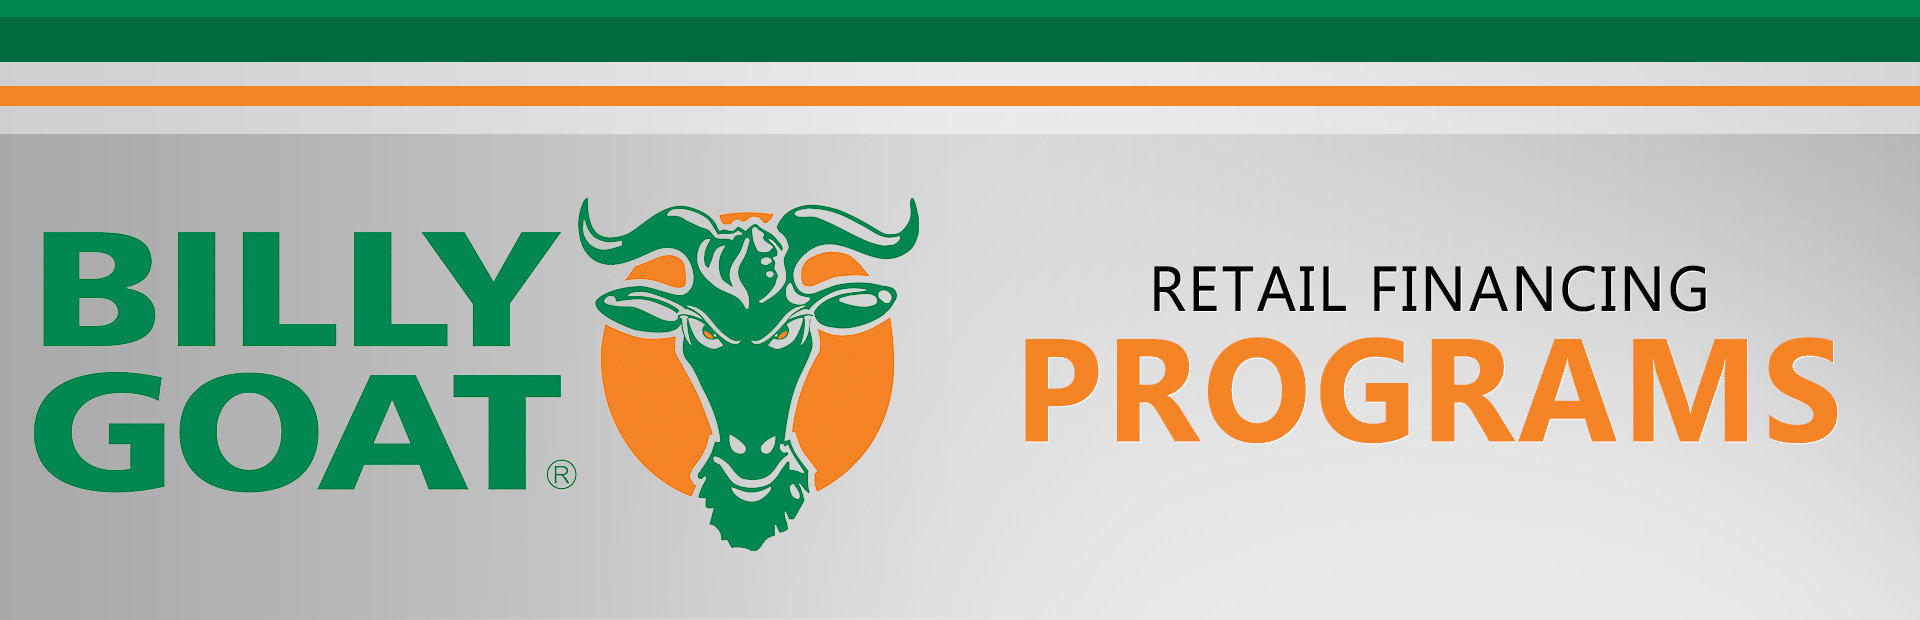 Billy Goat: Retail Financing